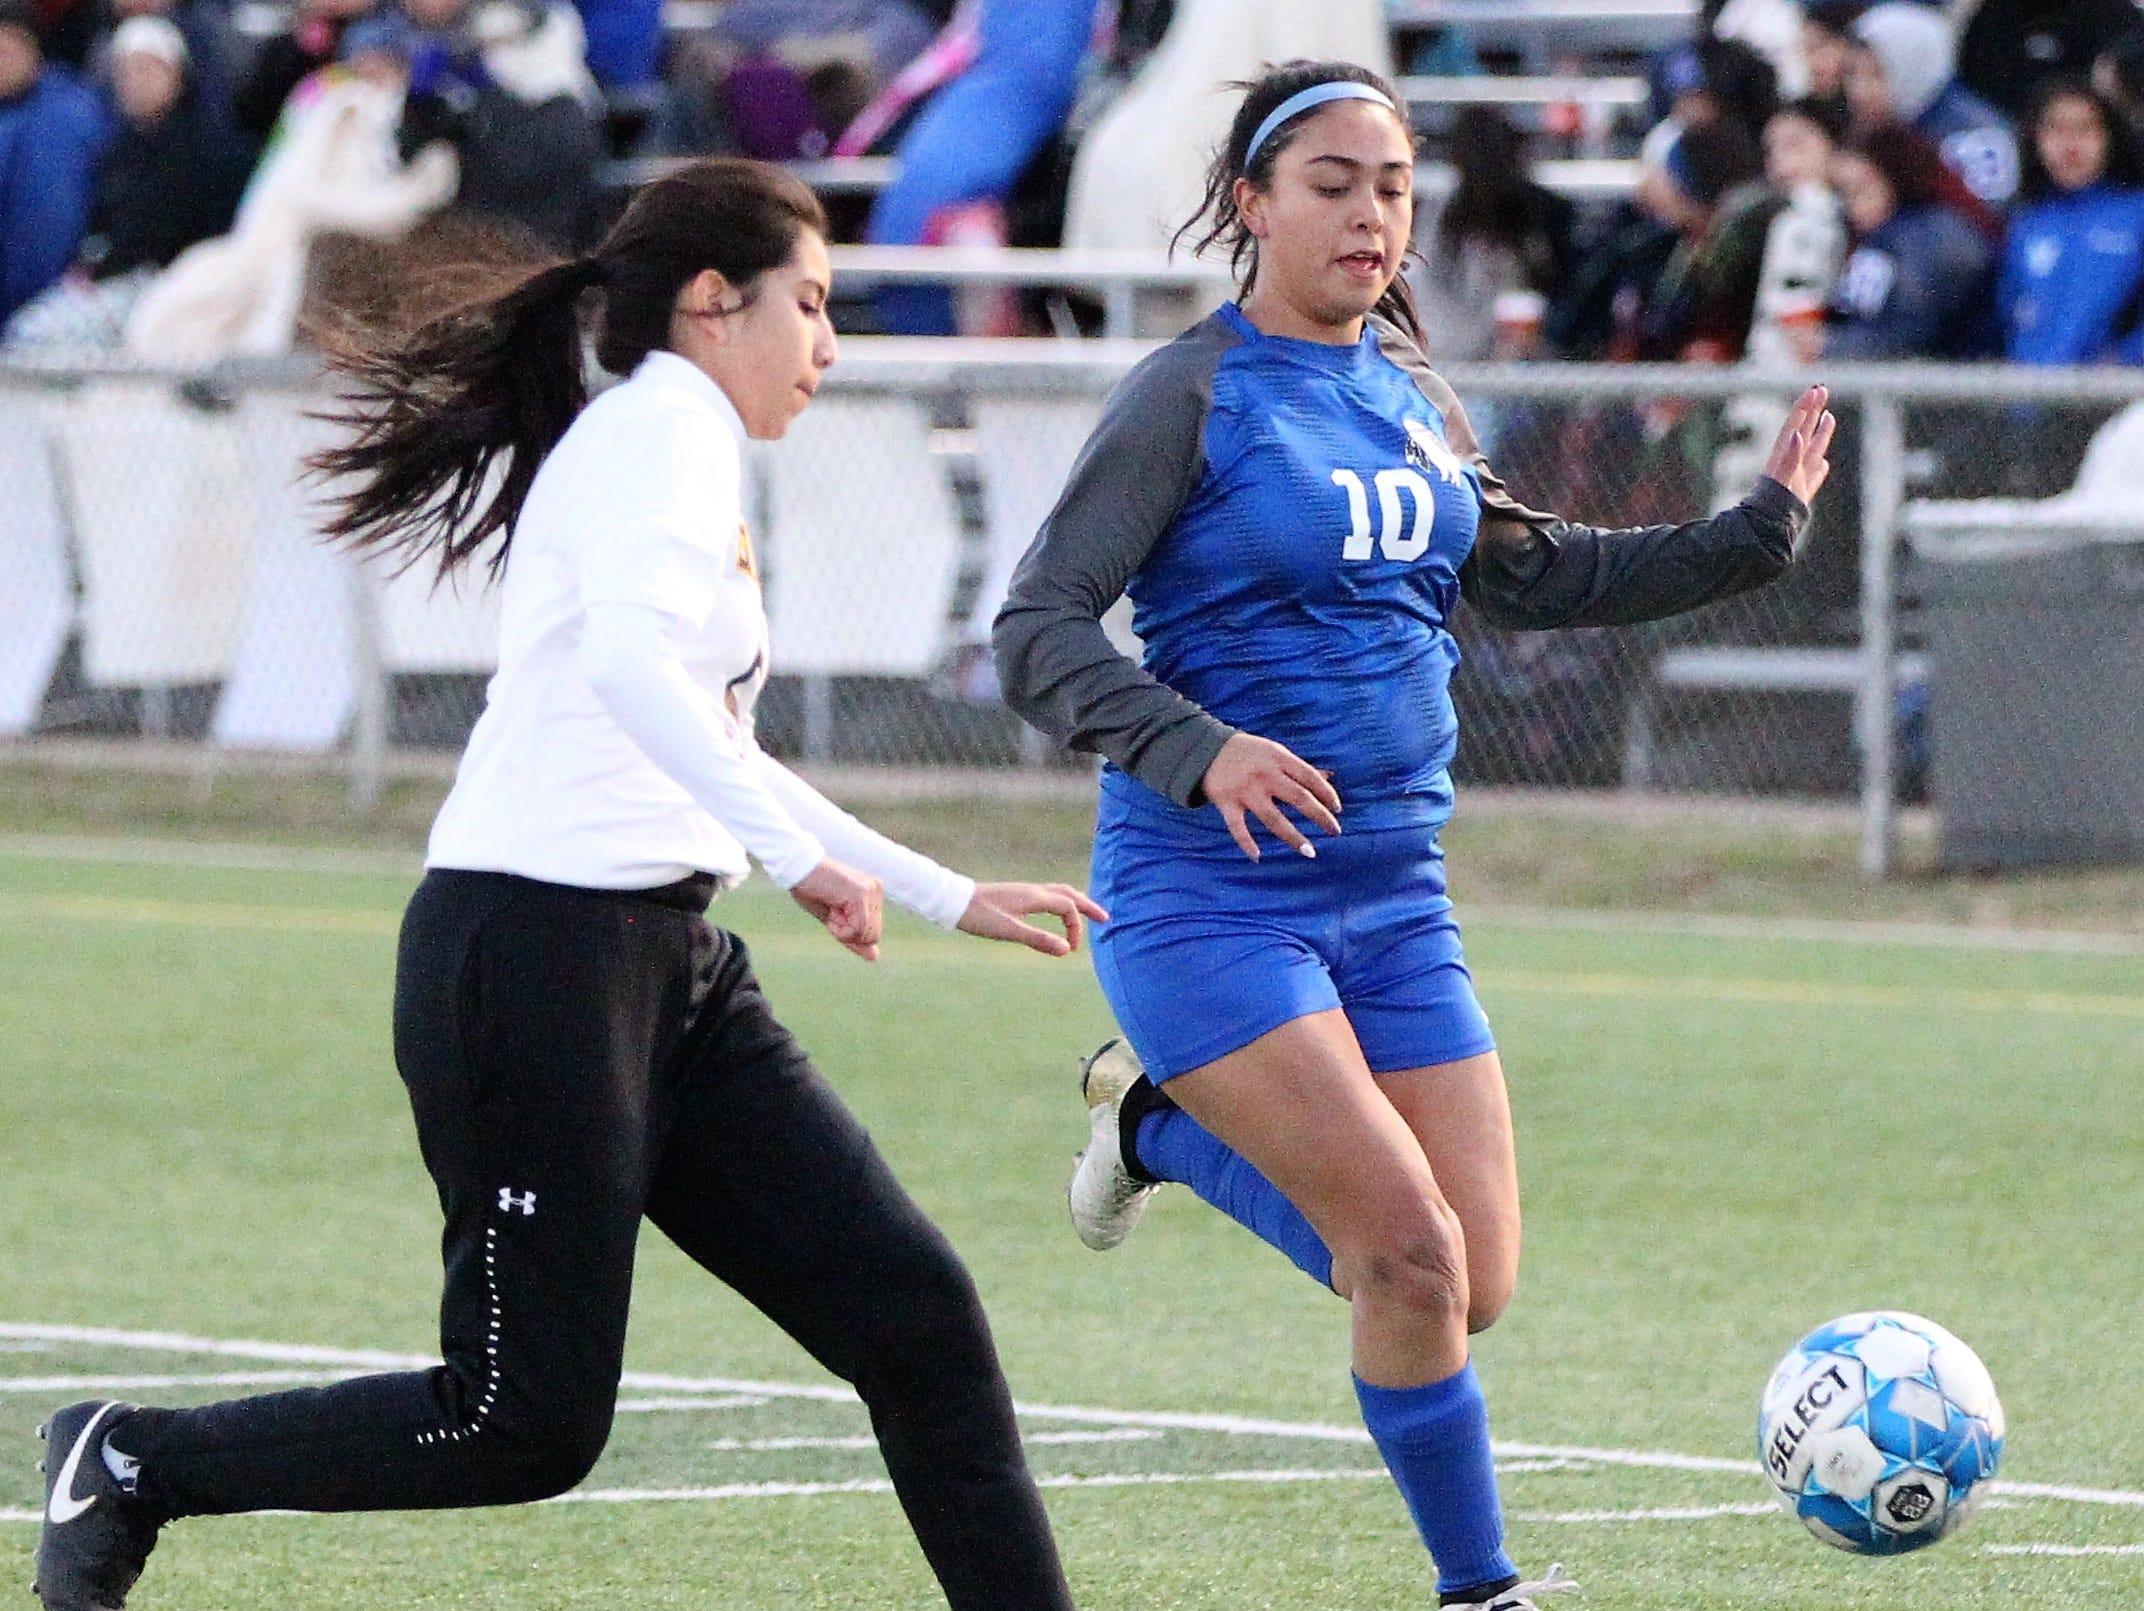 Lake View's Alize Garfias (right) fights for the ball in a District 4-4A soccer match against Snyder at Old Bobcat Stadium on Tuesday, March 5, 2019.